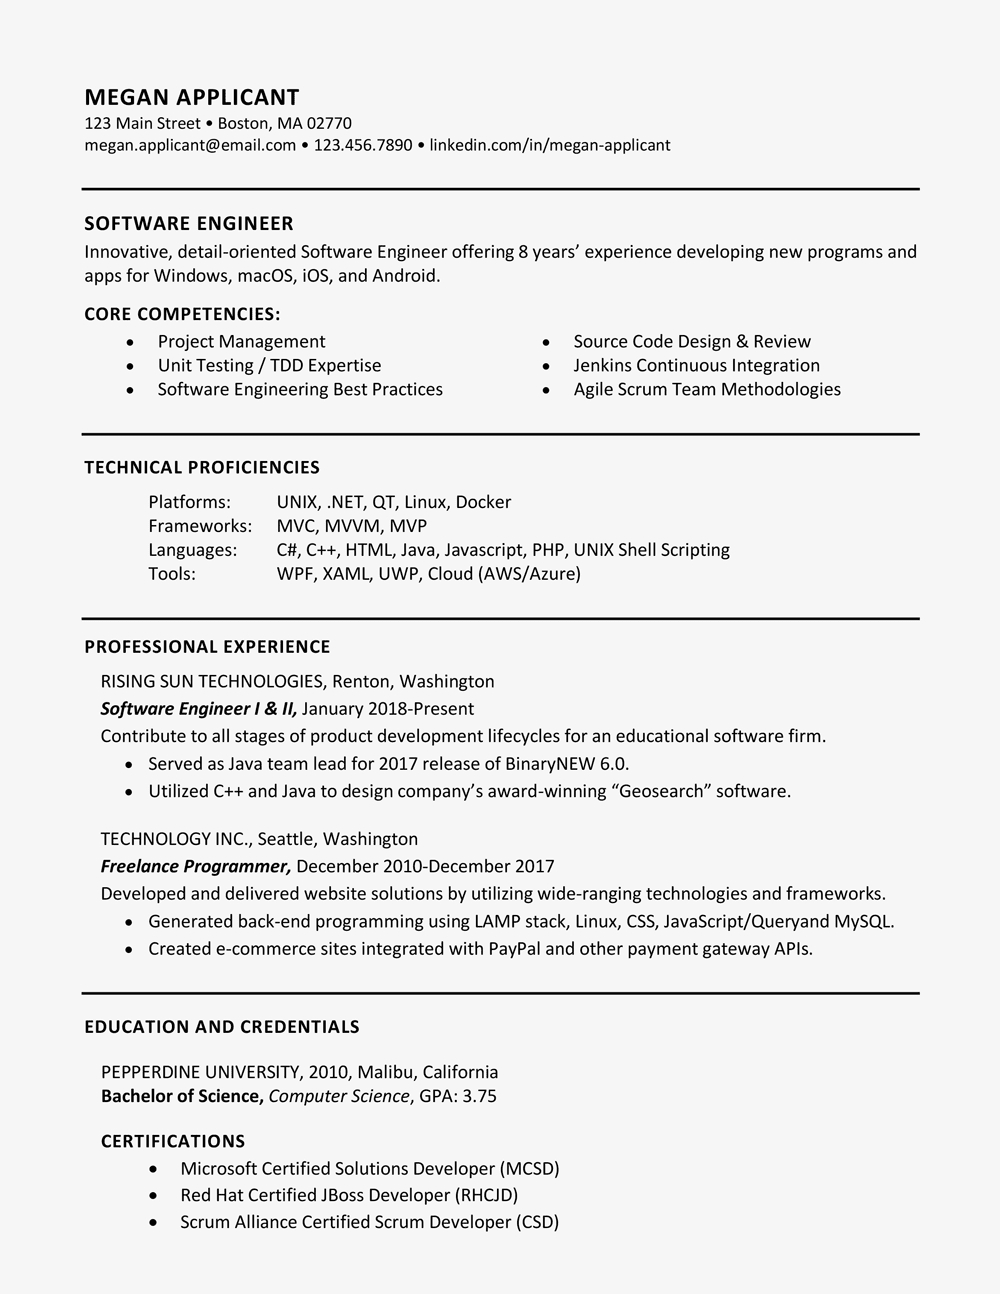 Hard Skills to Put On A Resume - the Best Skills to Include On A Resume